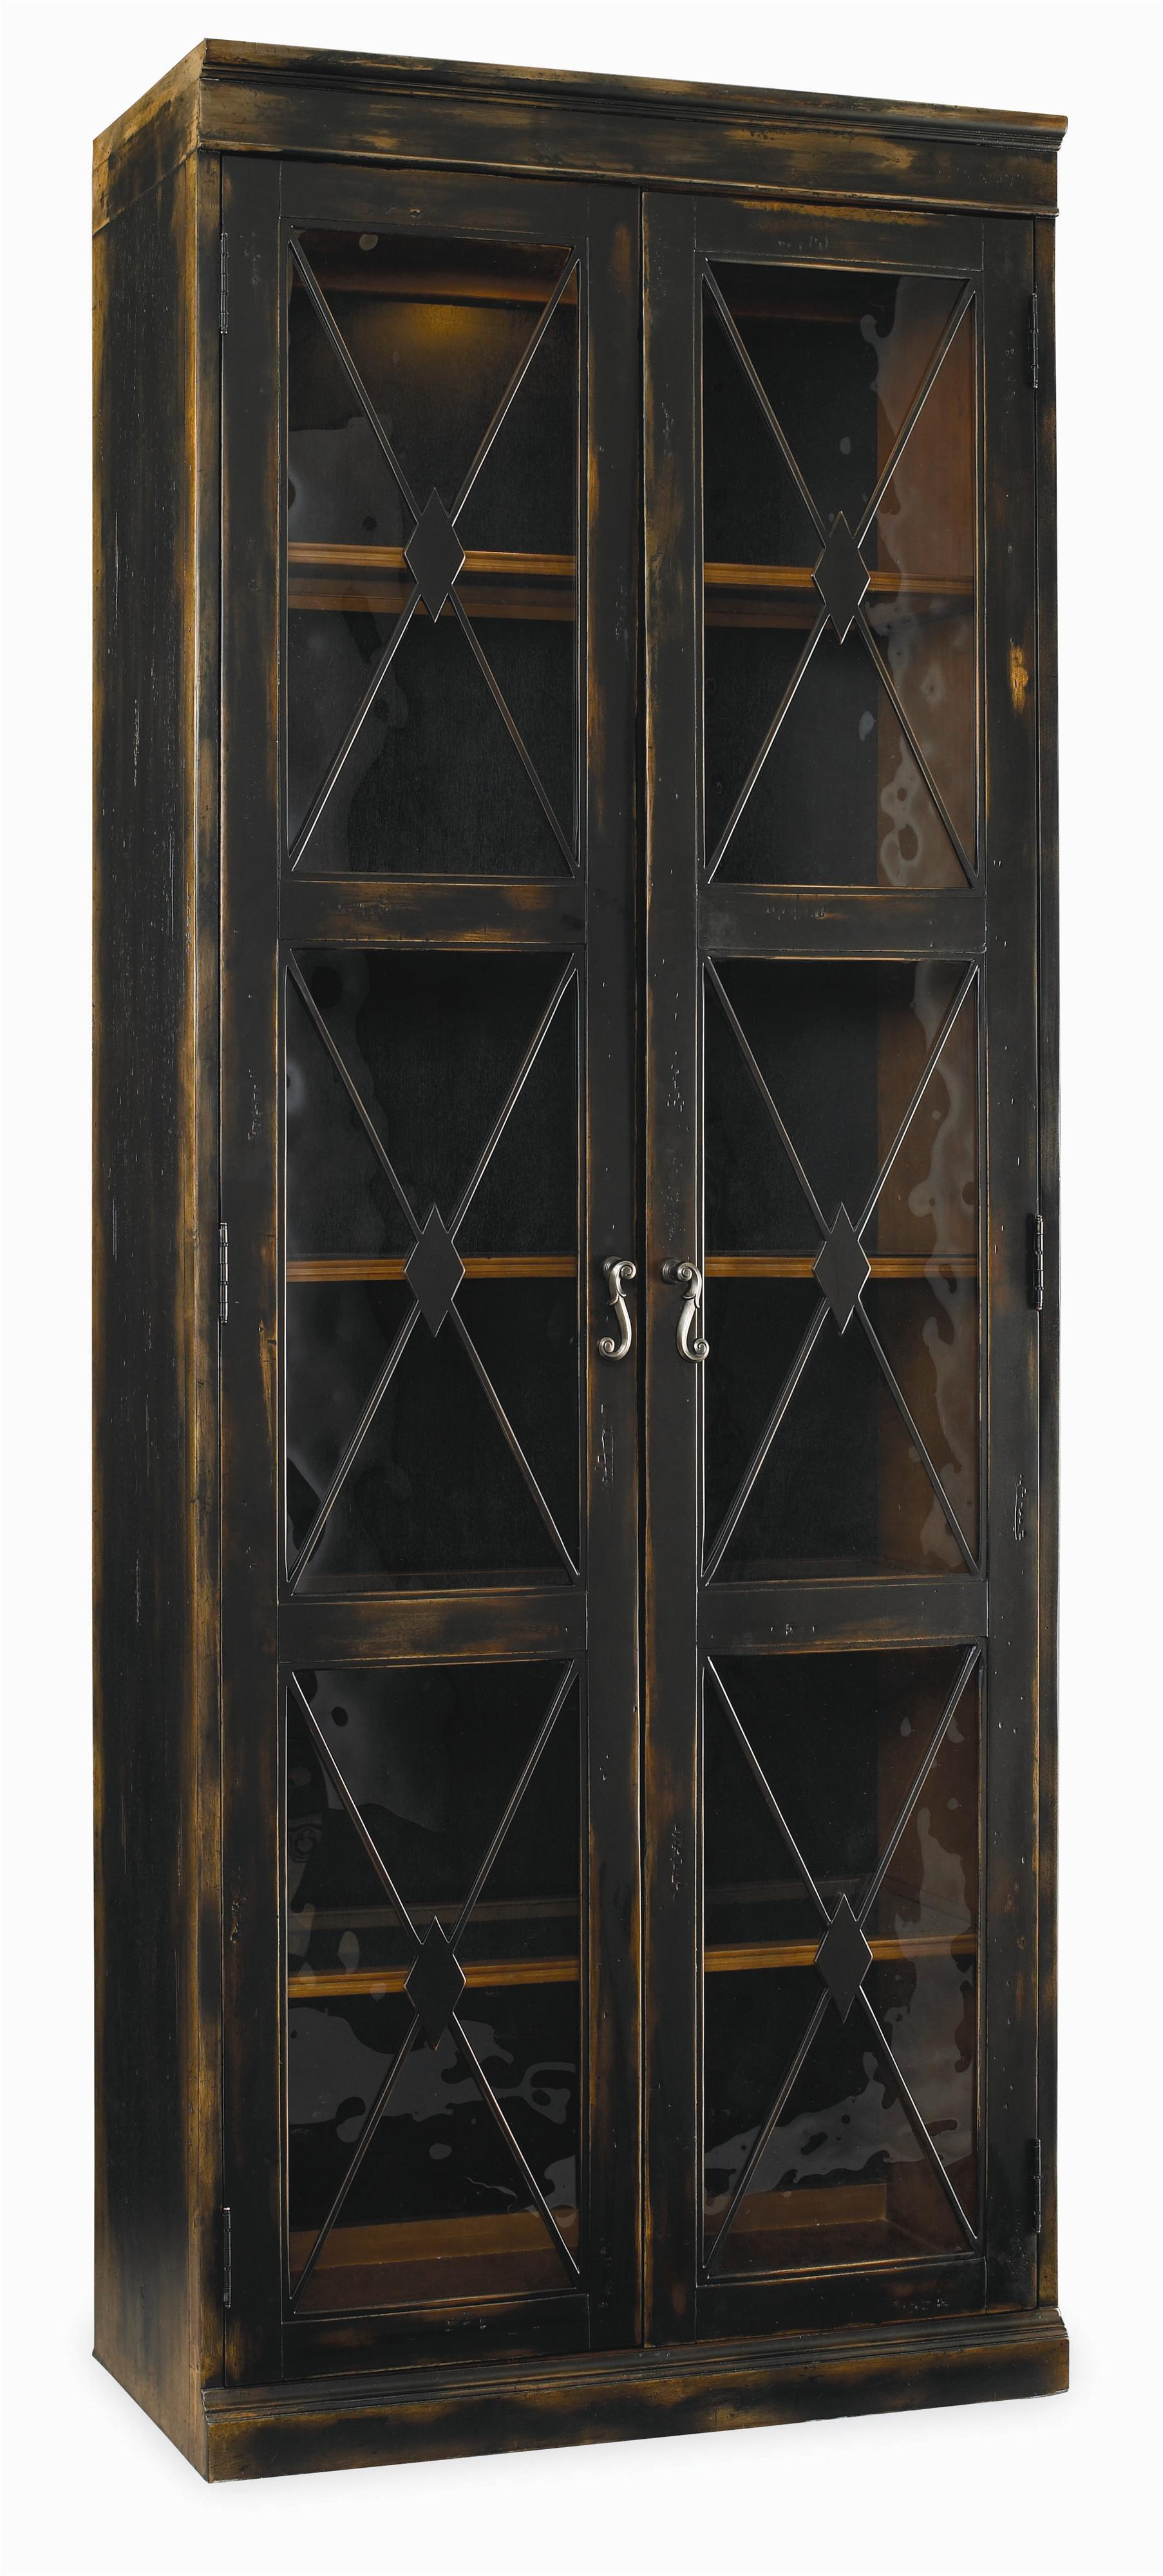 Sanctuary Two Door Thin Display Cabinet by Hooker Furniture at Miller Waldrop Furniture and Decor